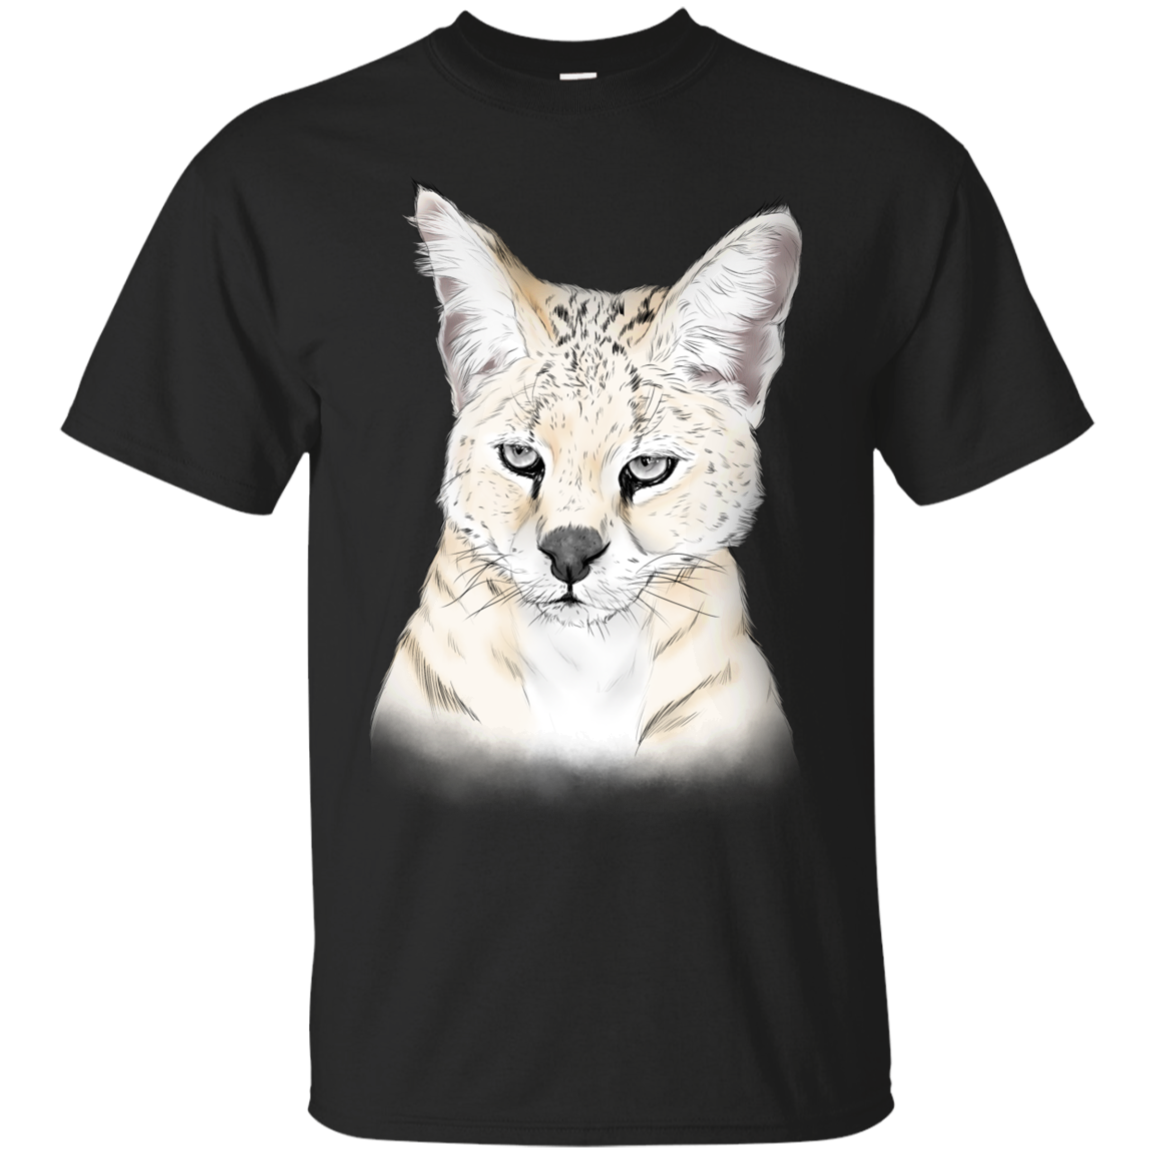 Frosty the White Serval Color G200 Gildan Ultra Cotton T